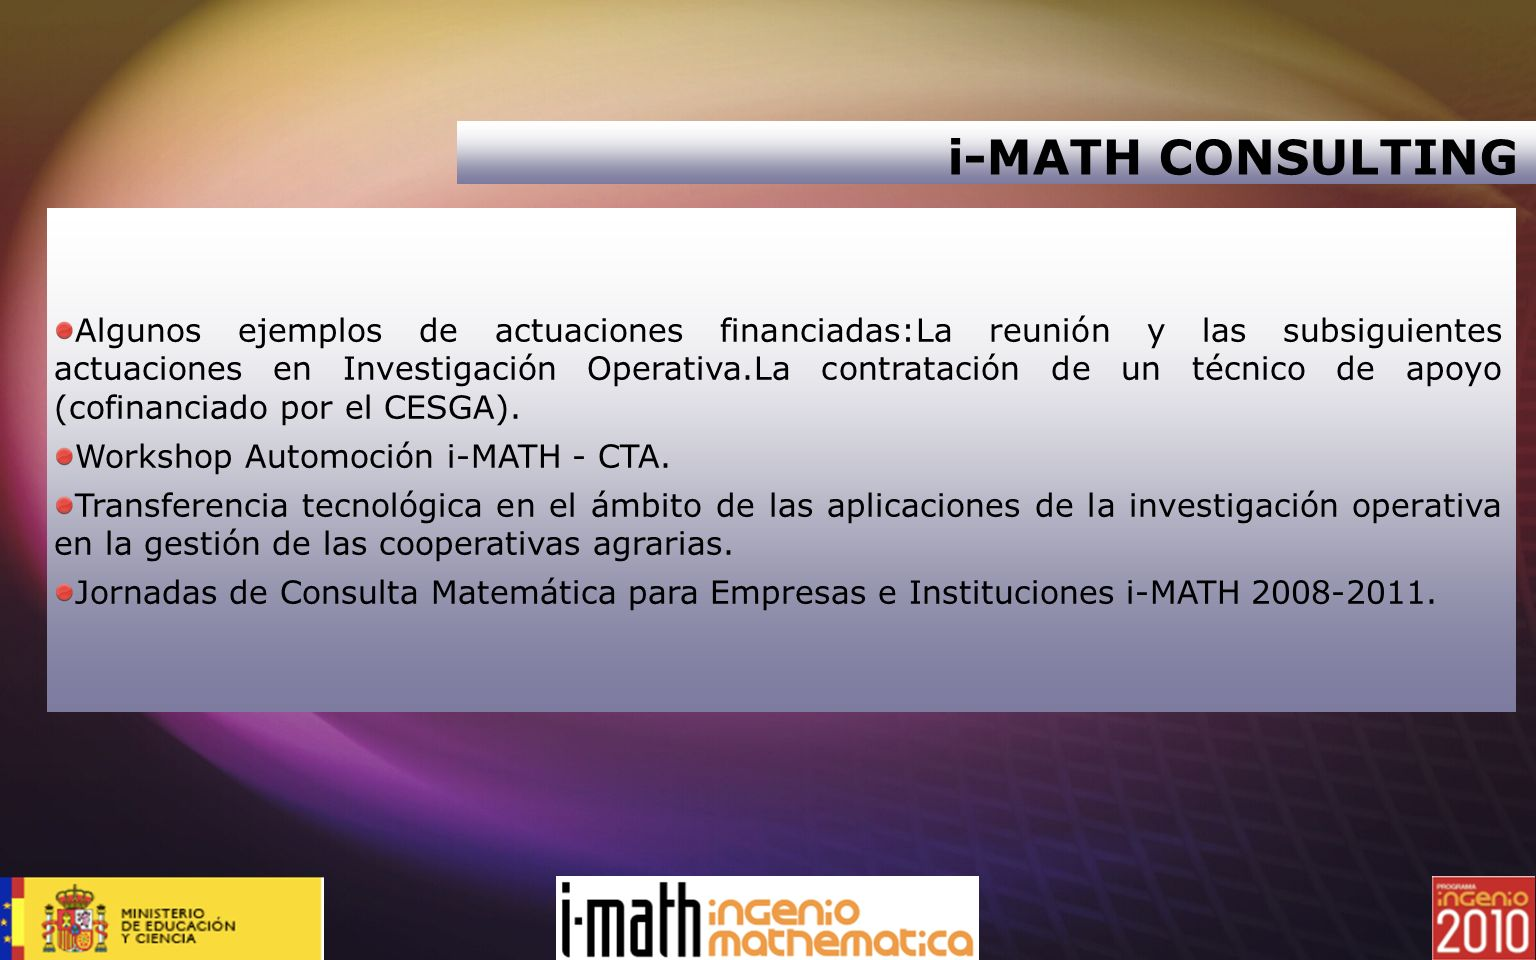 i-MATH CONSULTING